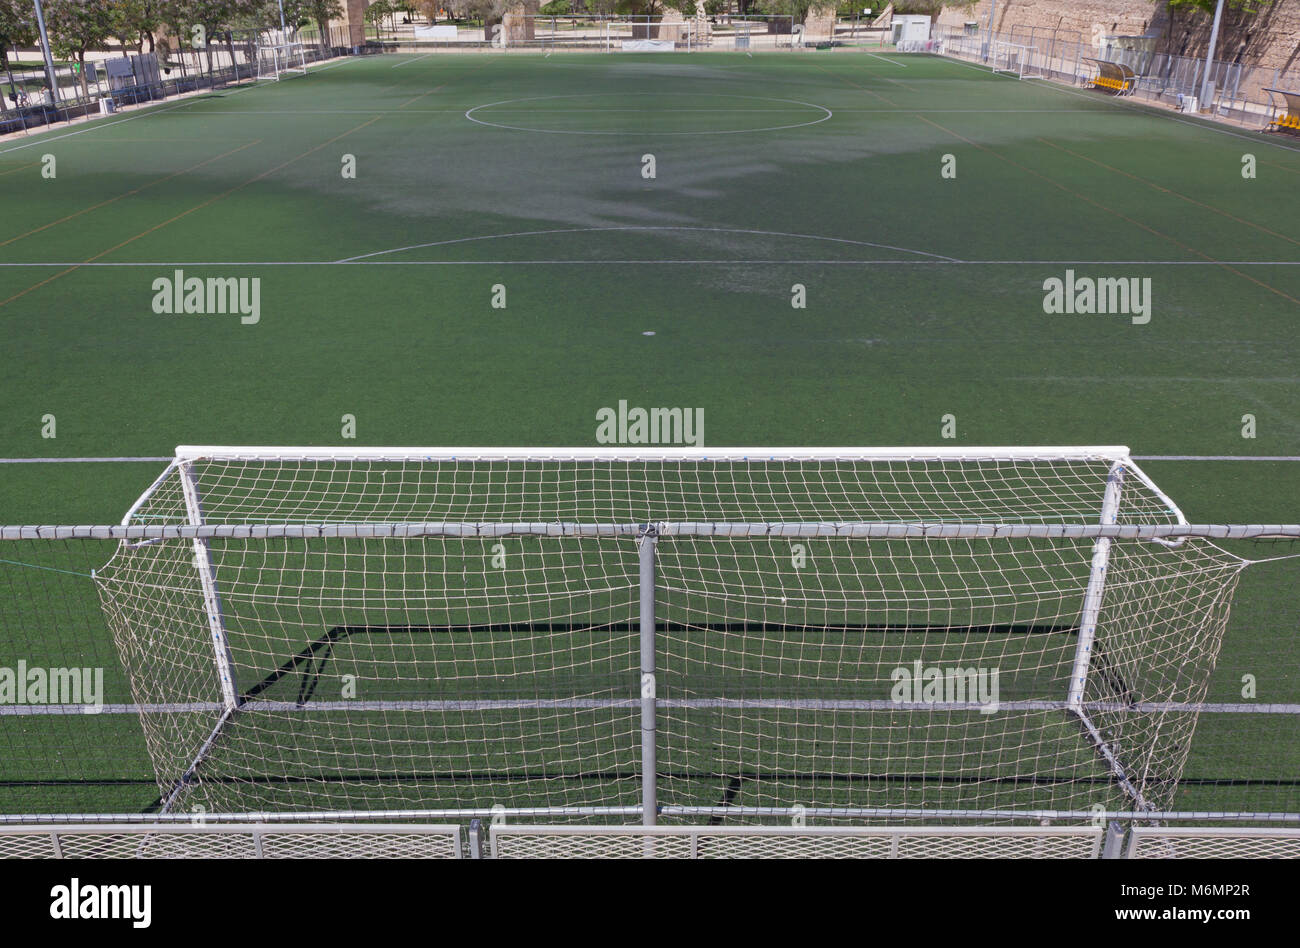 grass soccer field with goal. Plain Goal View Of A Synthetic Grass Soccer Field From Behind Goal In Grass Soccer Field With Goal S